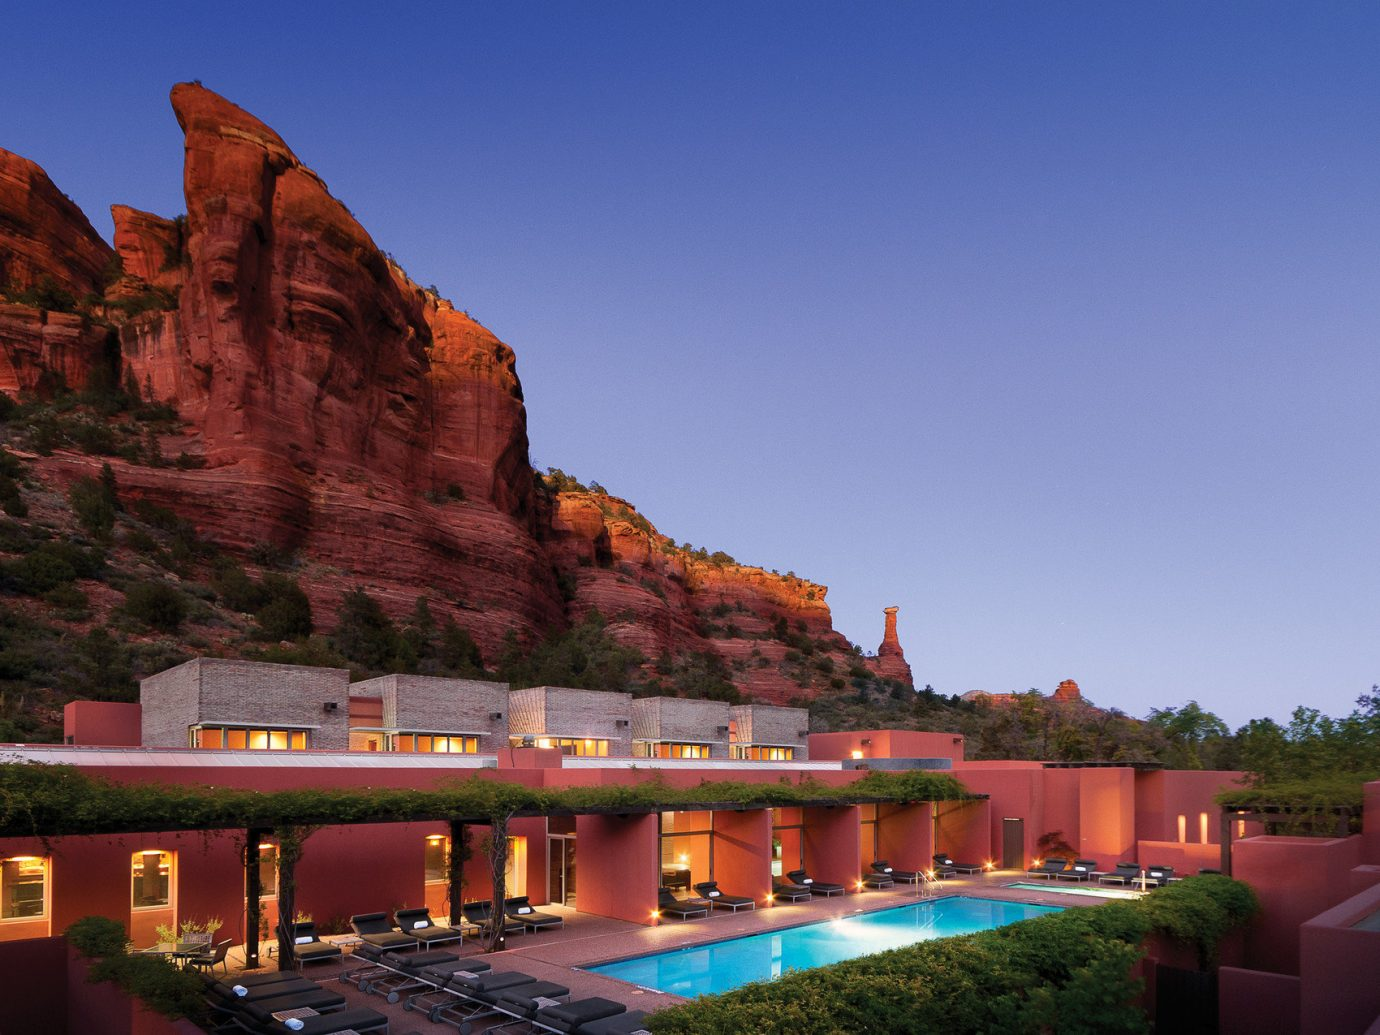 ambient lighting building Exterior golden hour Greenery isolation lounge chairs Luxury Mountains outdoor pool Pool relaxation remote retreat Rocks Spa Sunset Trip Ideas outdoor sky mountain estate Resort traveling